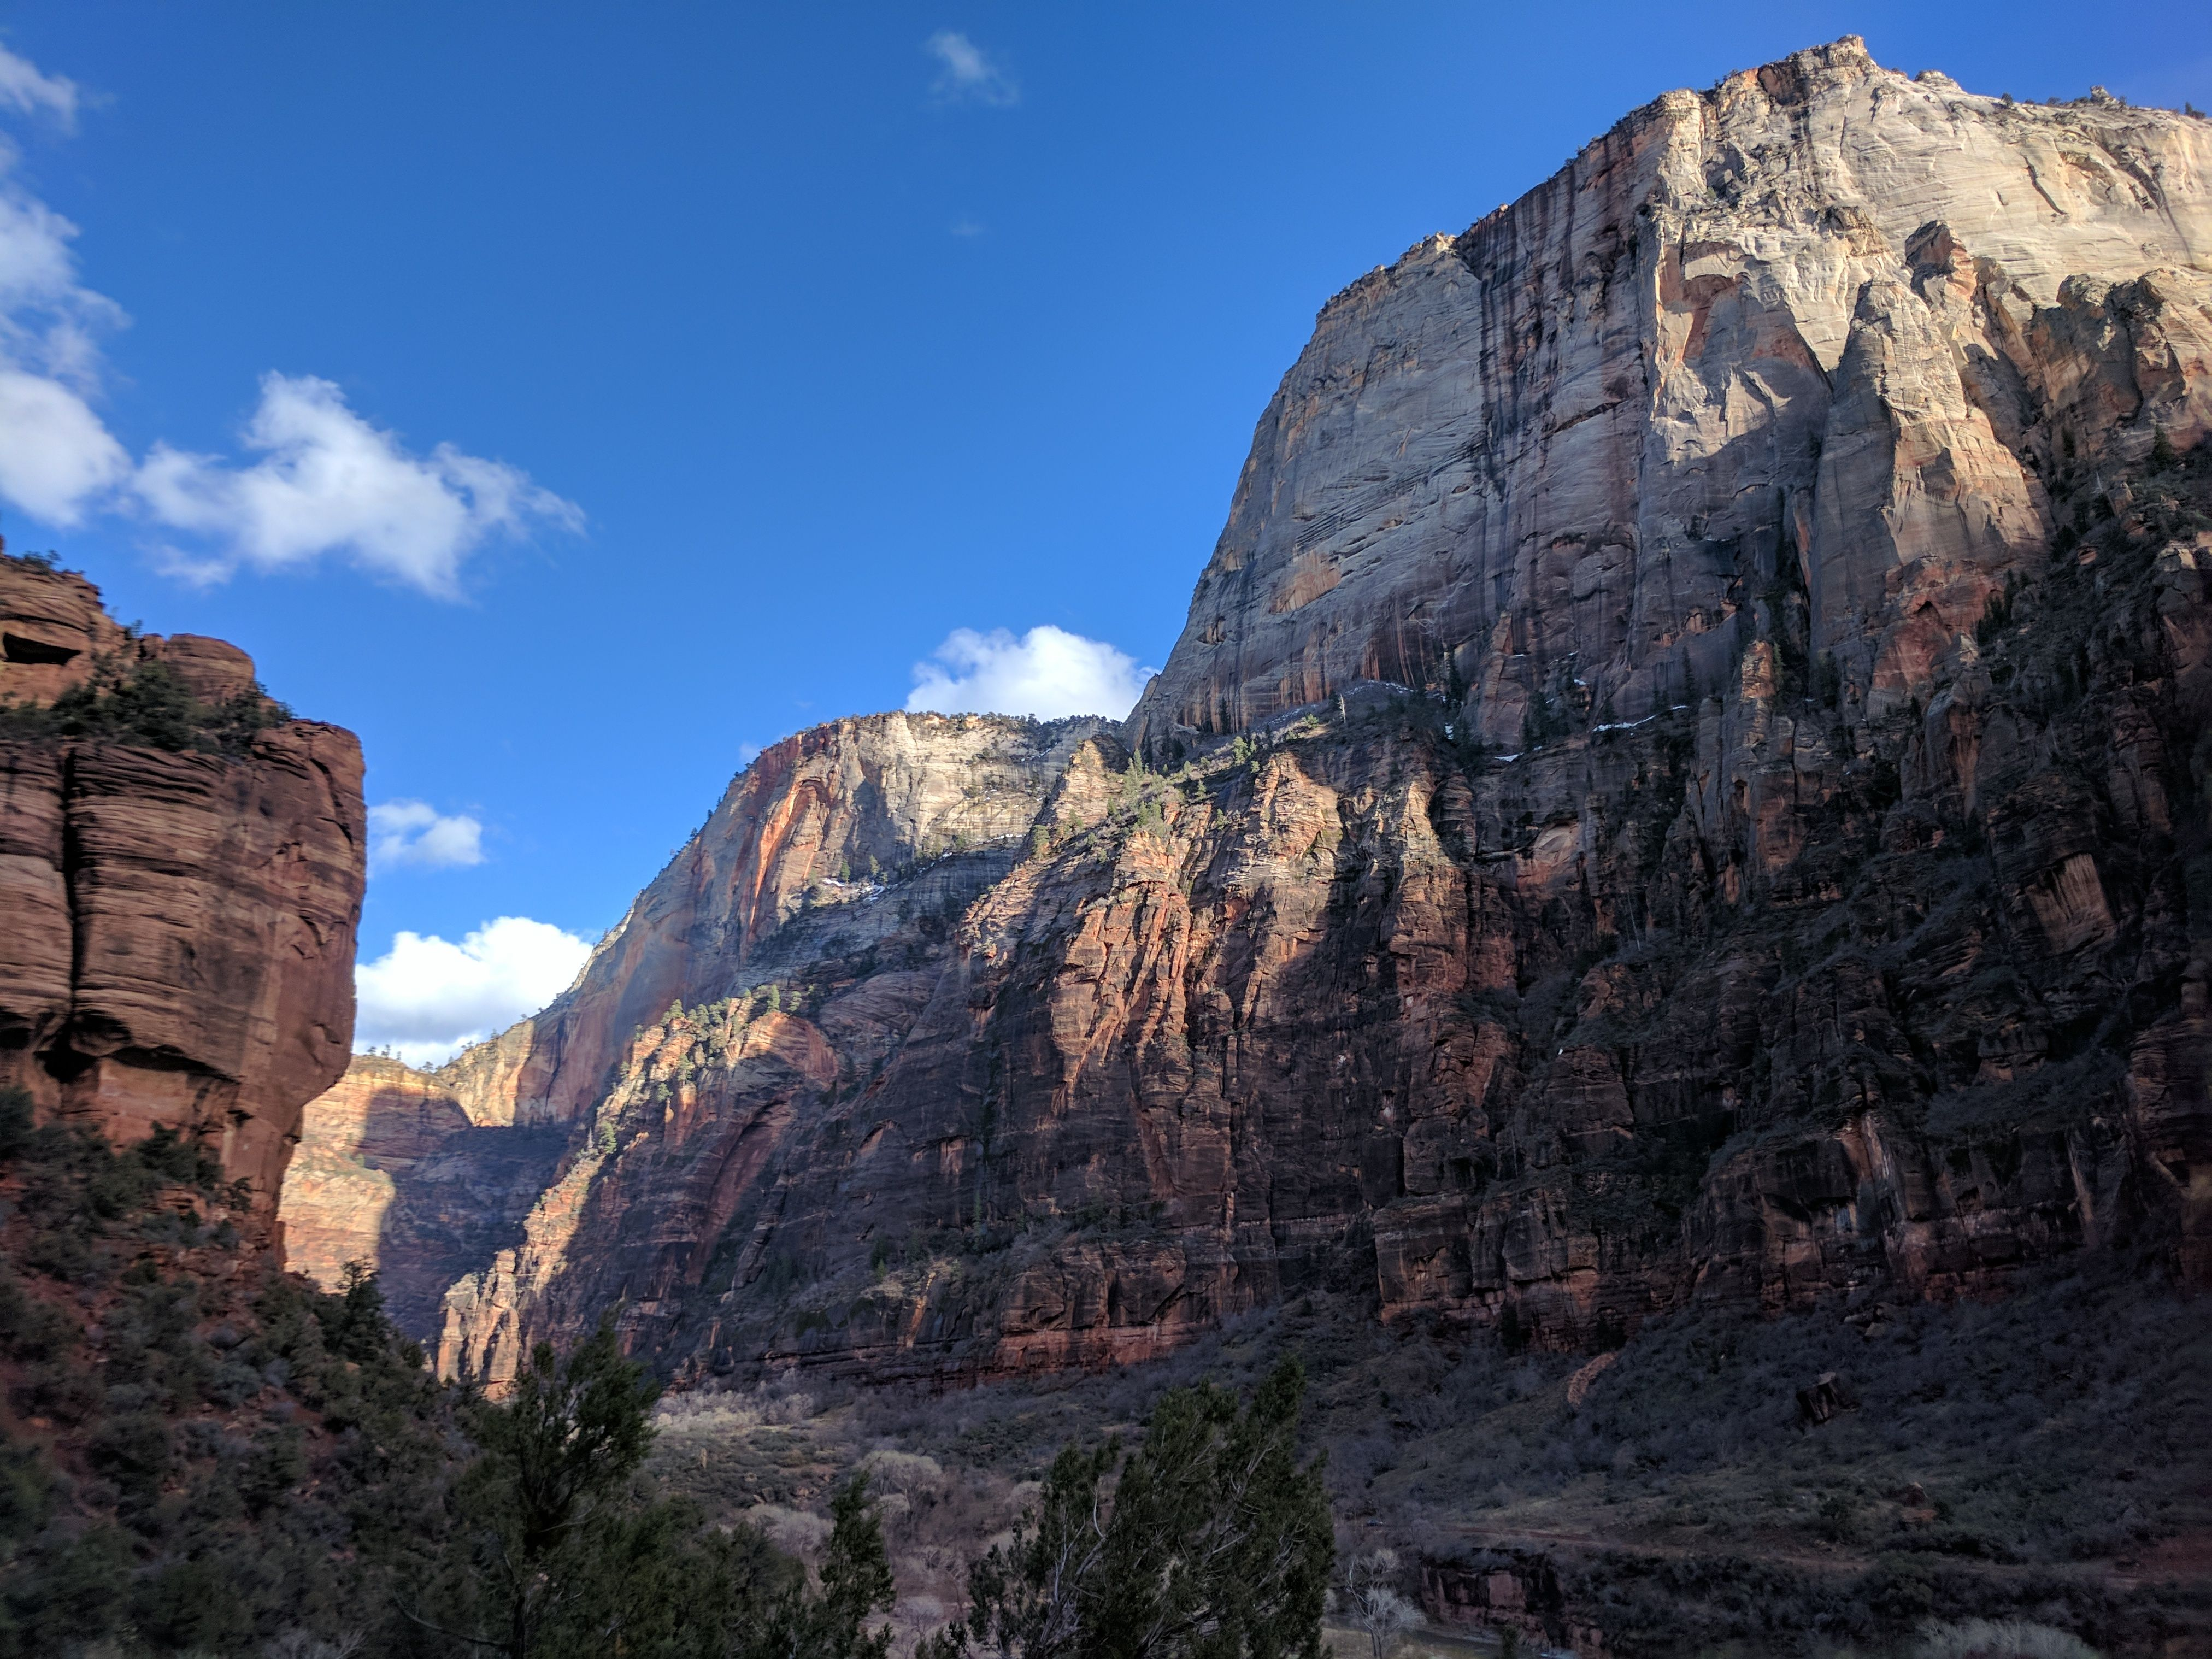 Taken On The Way Back From Angels Landing In Zion National Park